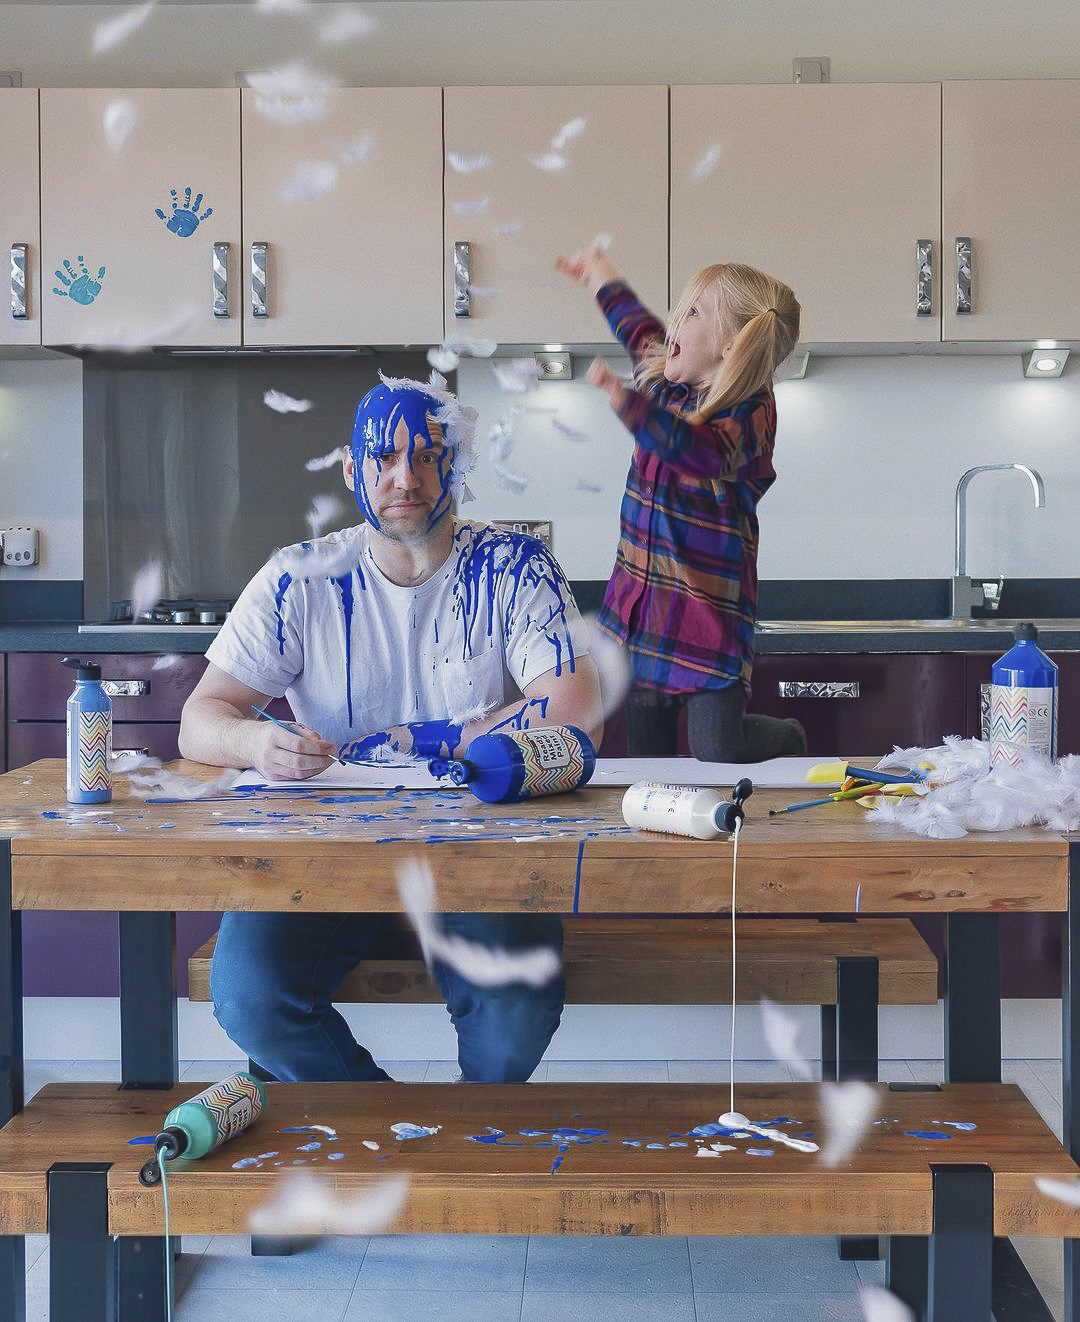 Meet the Mum and Dad duo creating playful, tongue-in-cheek photos of everyday family life